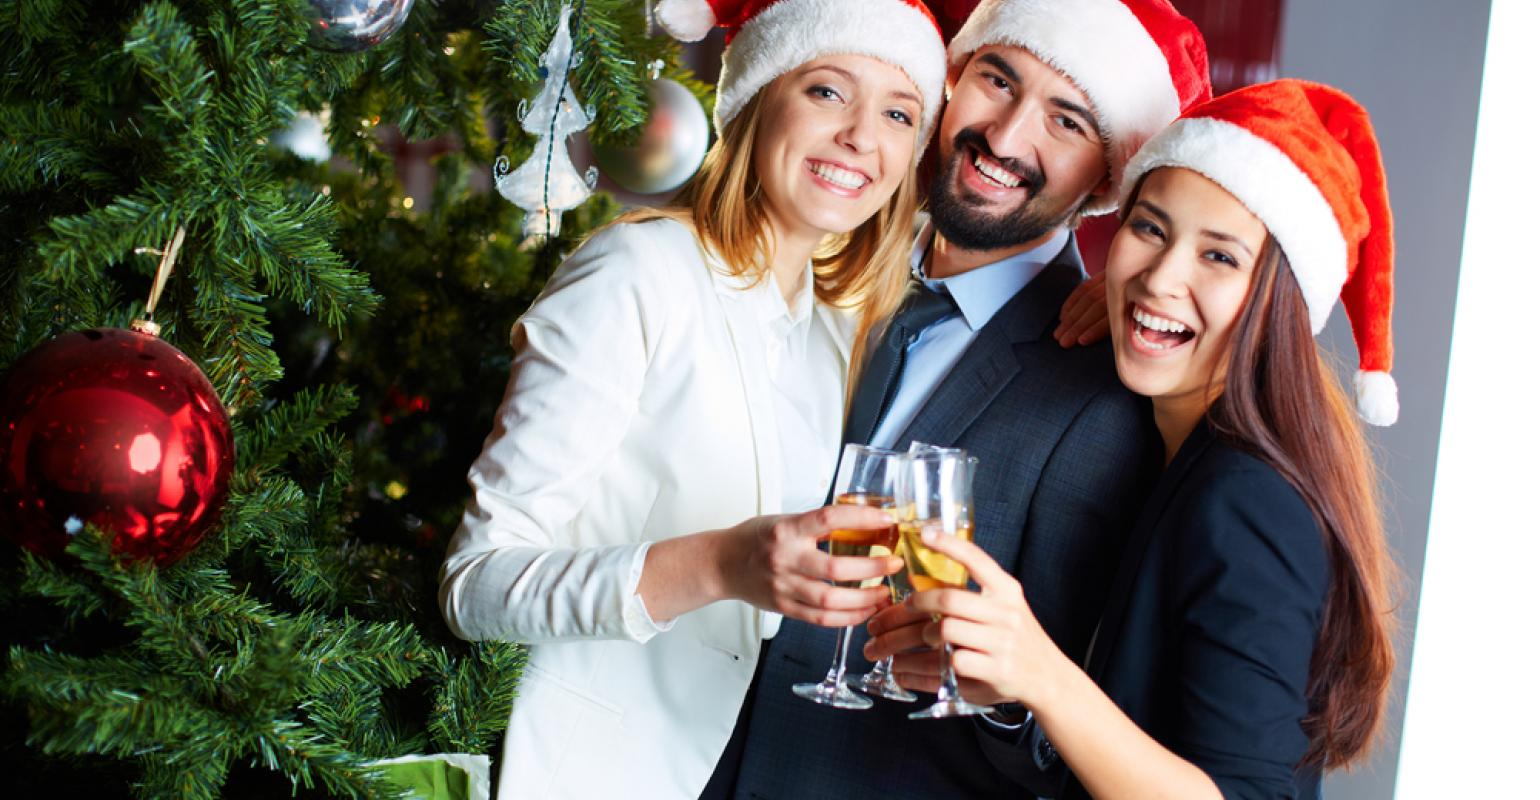 Christmas dress ideas for office party - Dress Code For Office Christmas Party Wearings